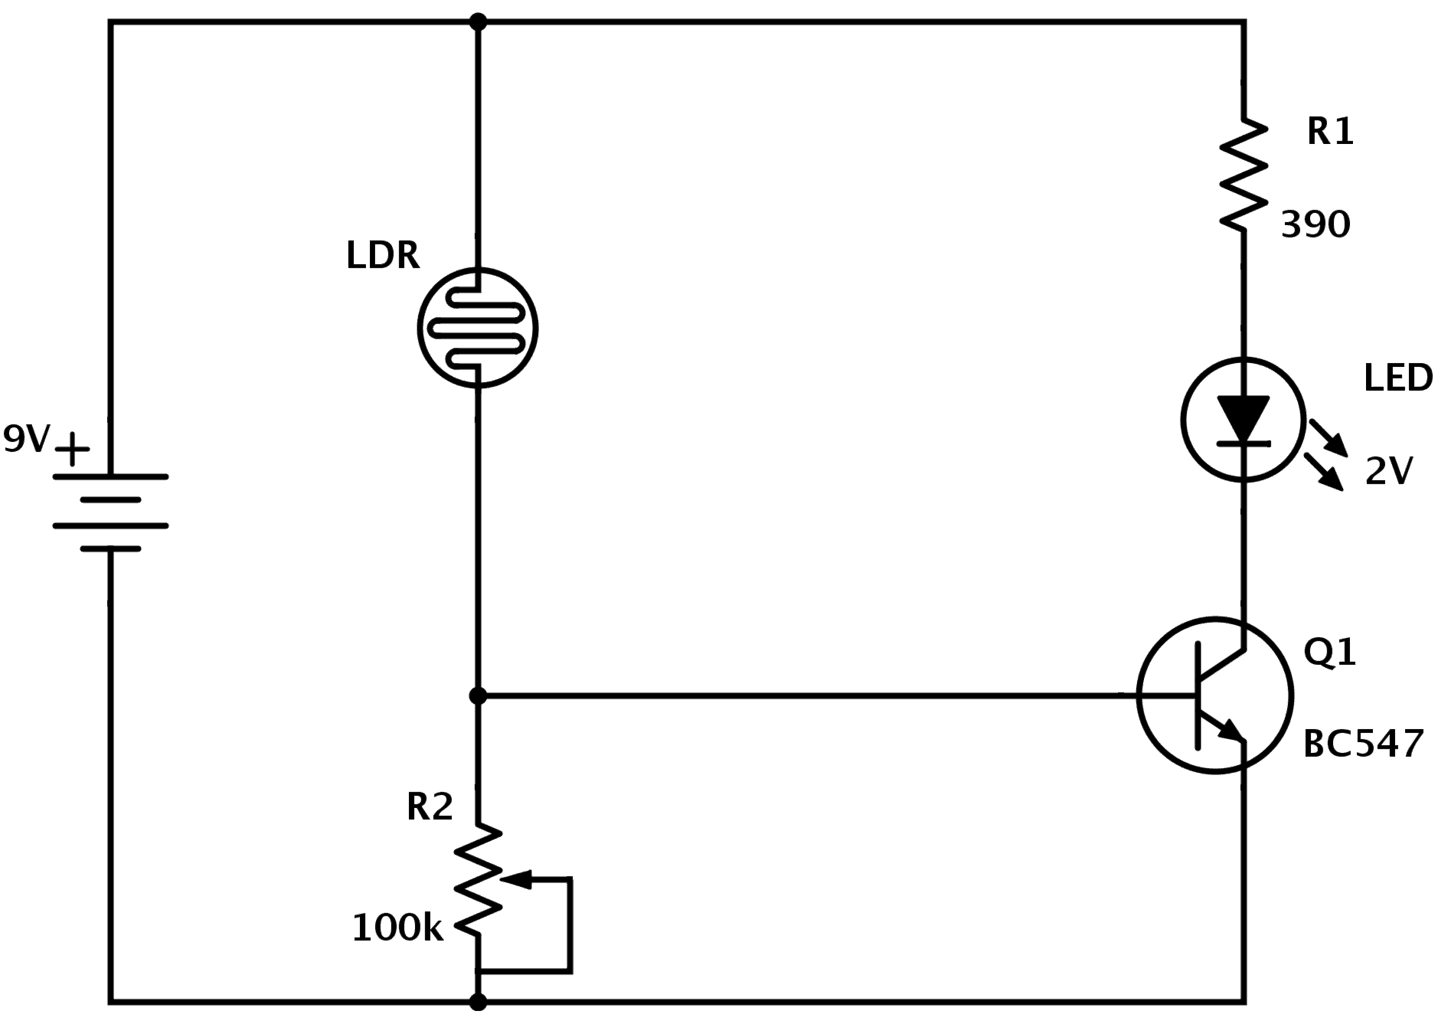 Ldr Circuit Diagram Build Electronic Circuits P Controller Block